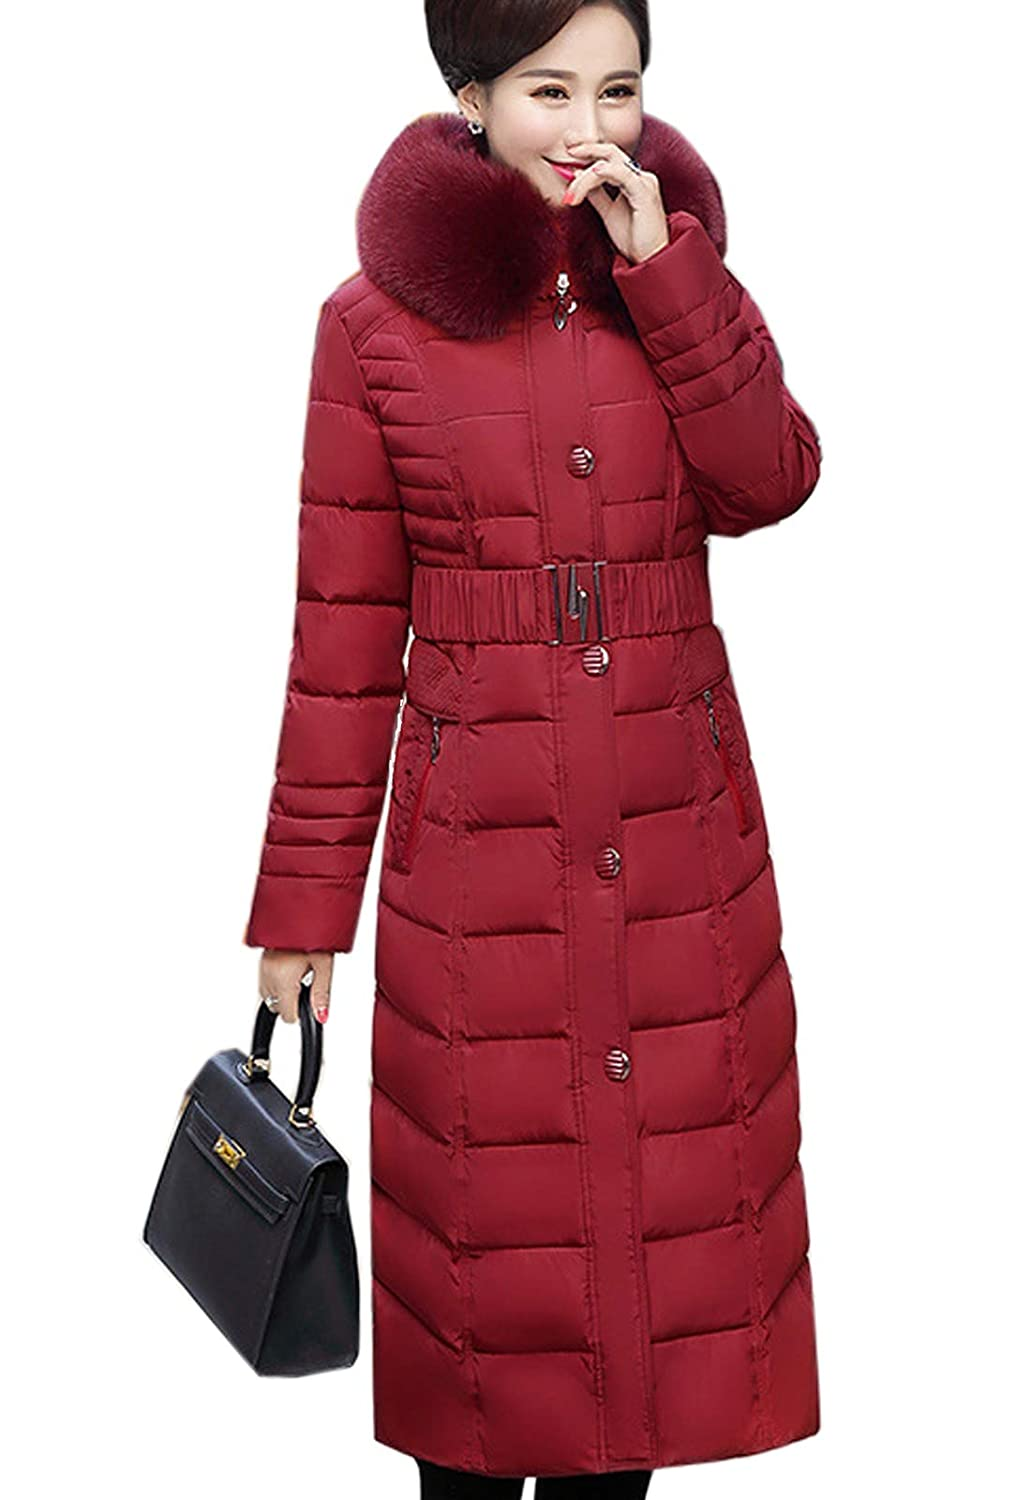 Flygo Women's Winter Warm Faux Fur Hooded Down Coat Parka Outcoat Puffer Jacket